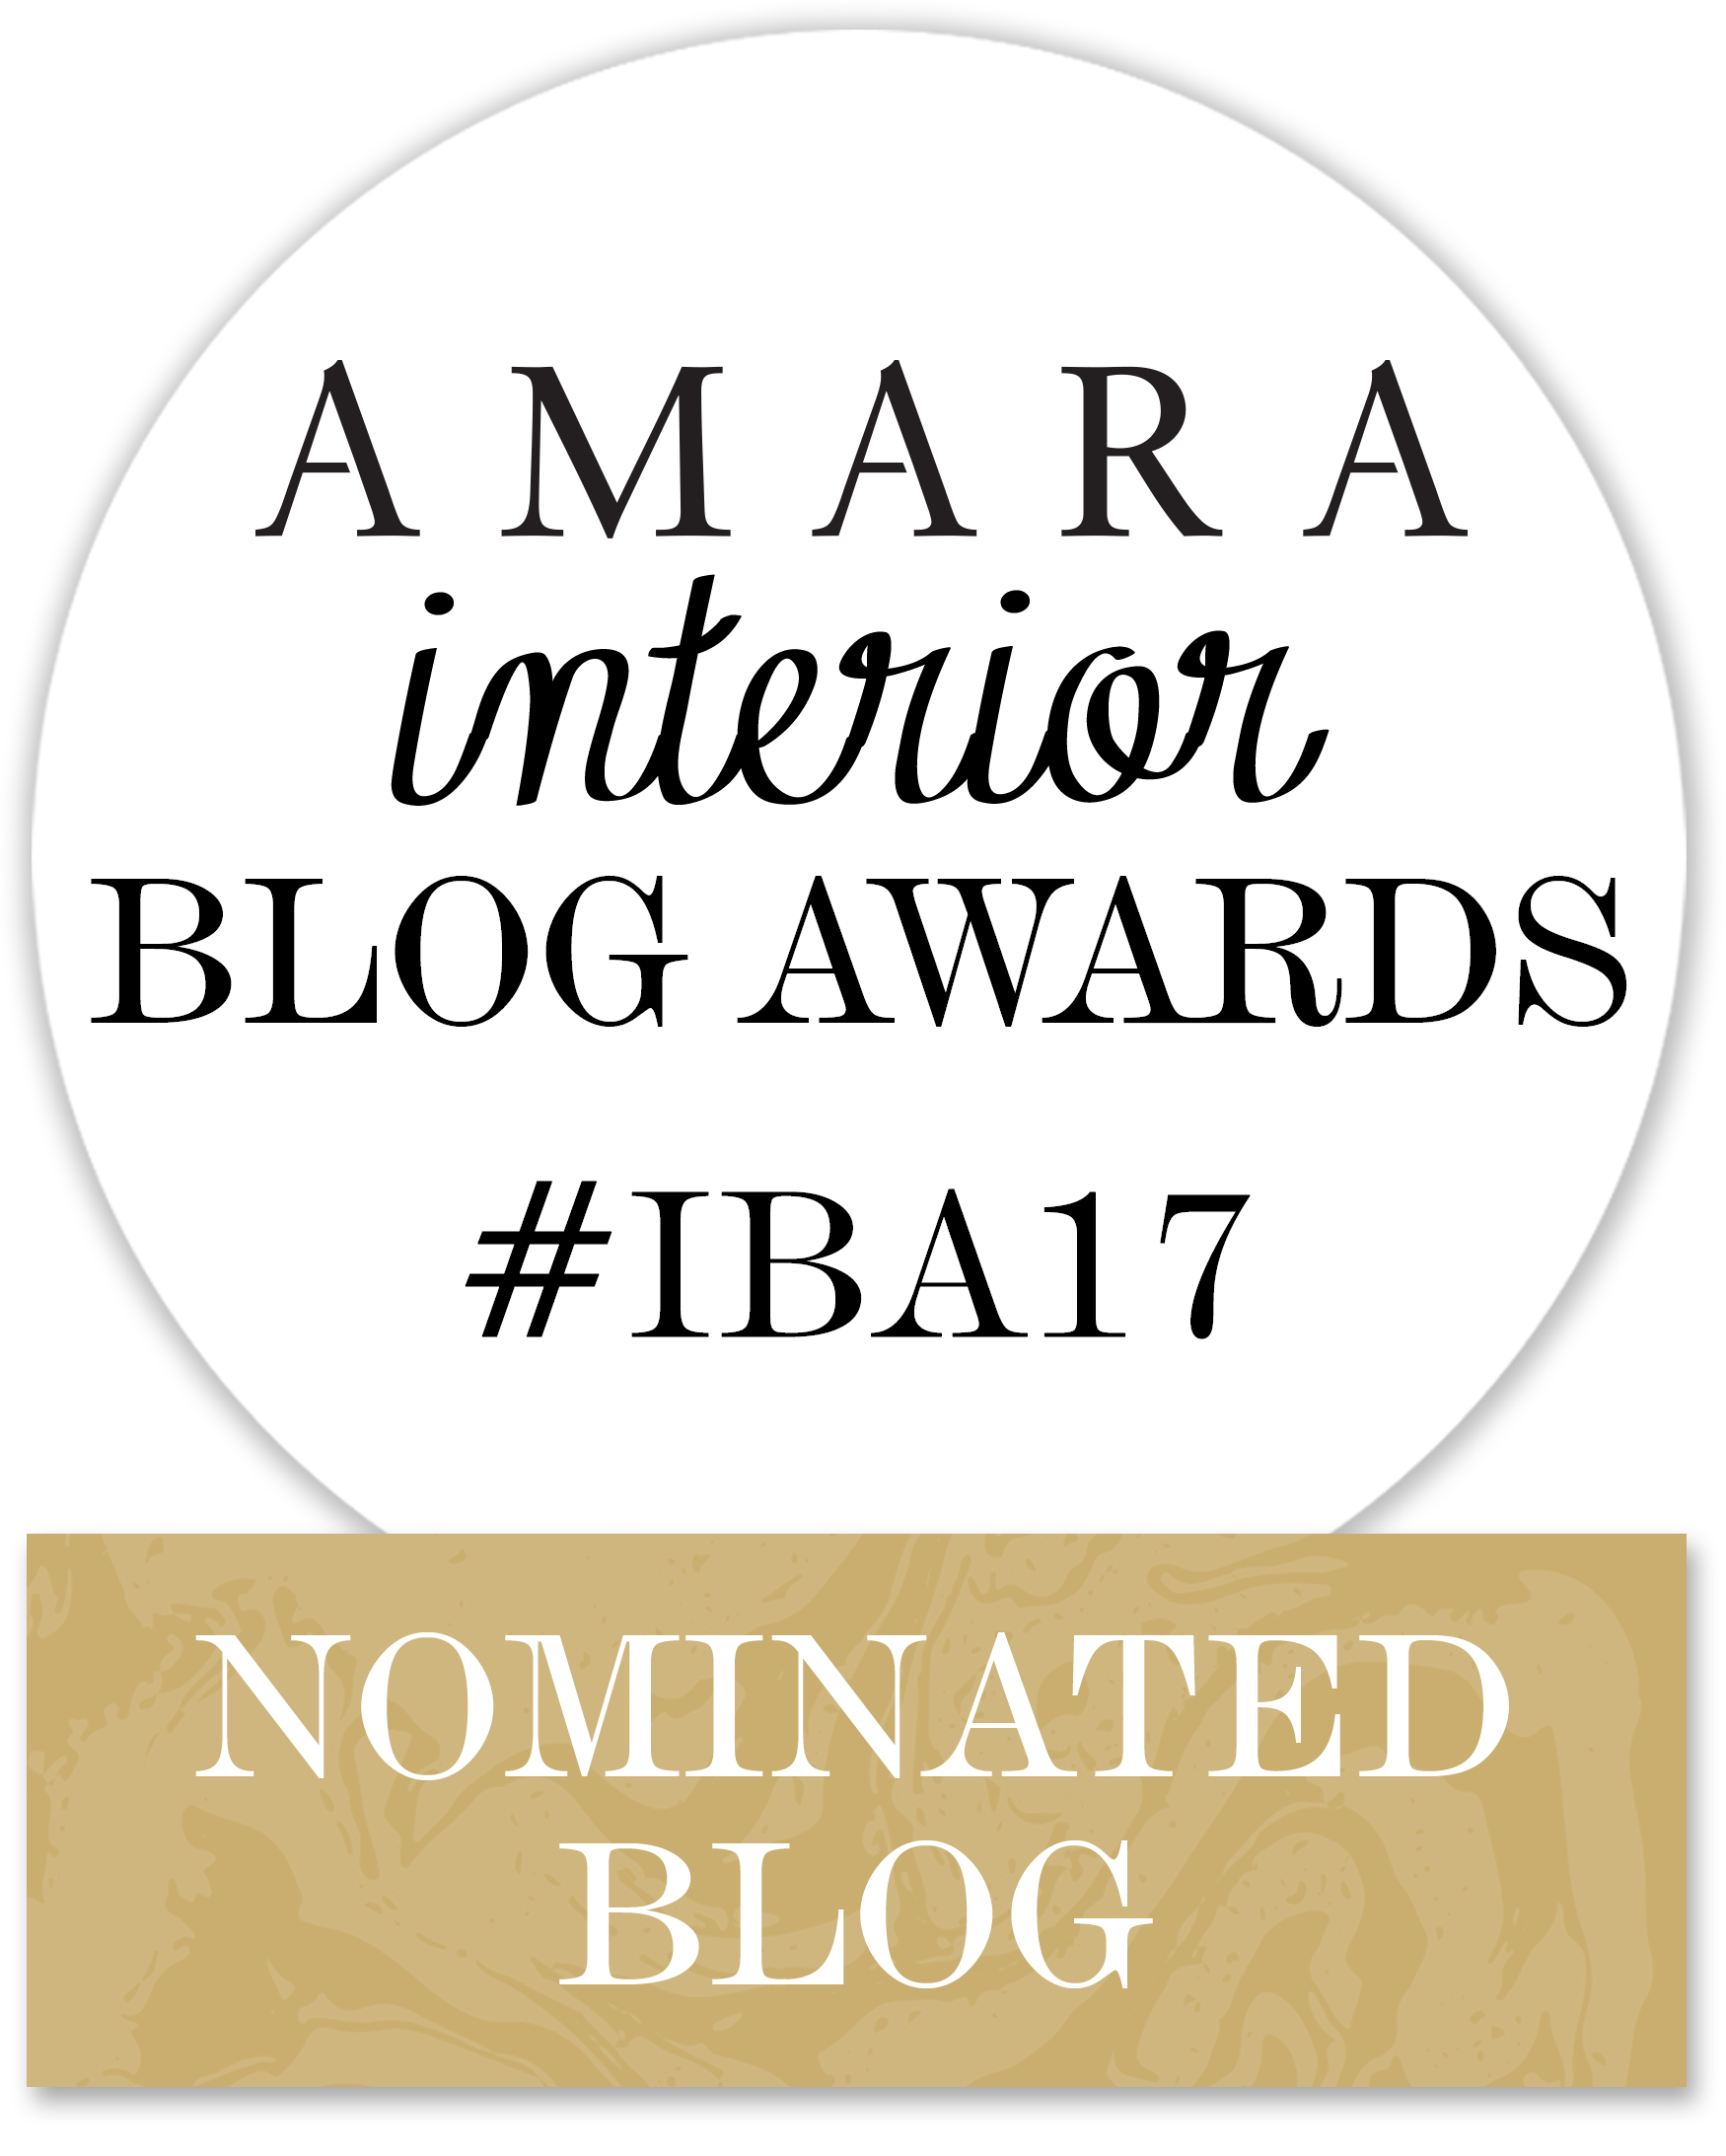 Amara Nominated Blog 2017